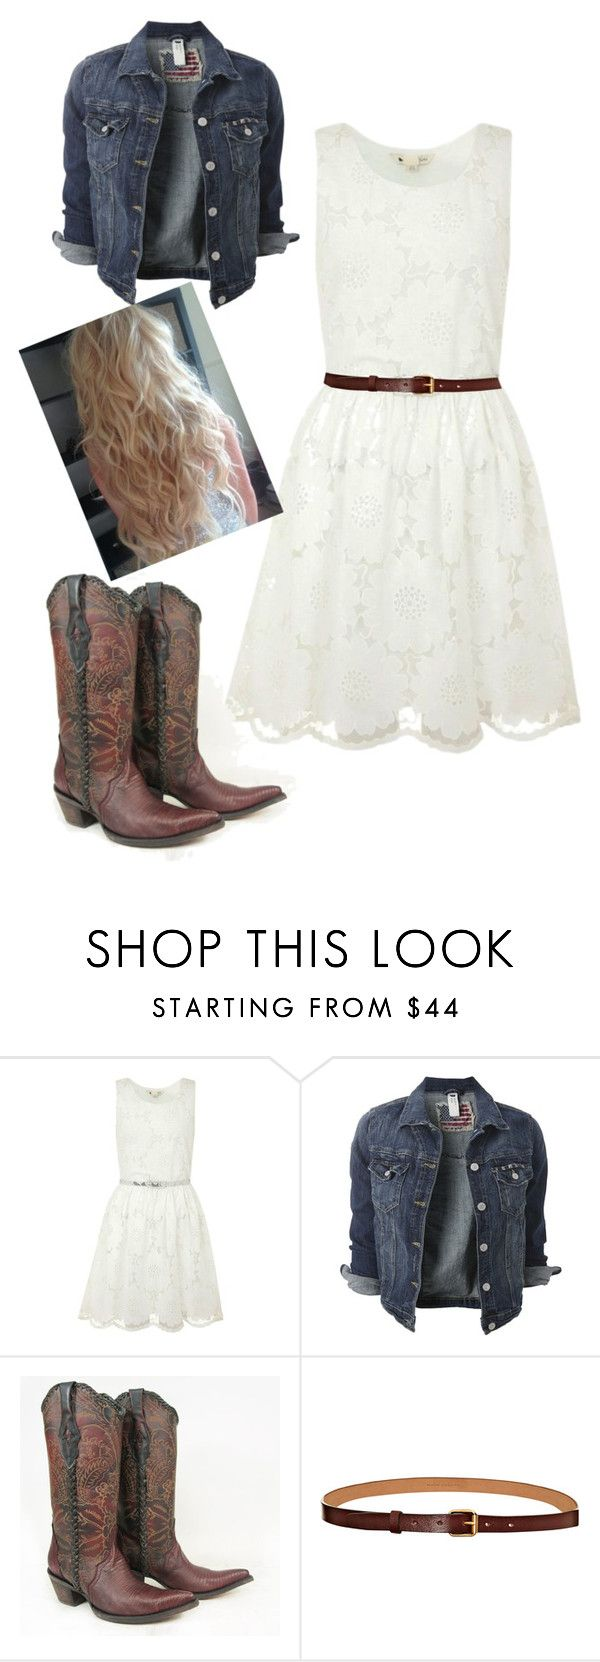 """White Dress - For Contest (65)"" by hannah-liebrecht ❤ liked on Polyvore featuring Yumi, Marc Jacobs, women's clothing, women, female, woman, misses and juniors"